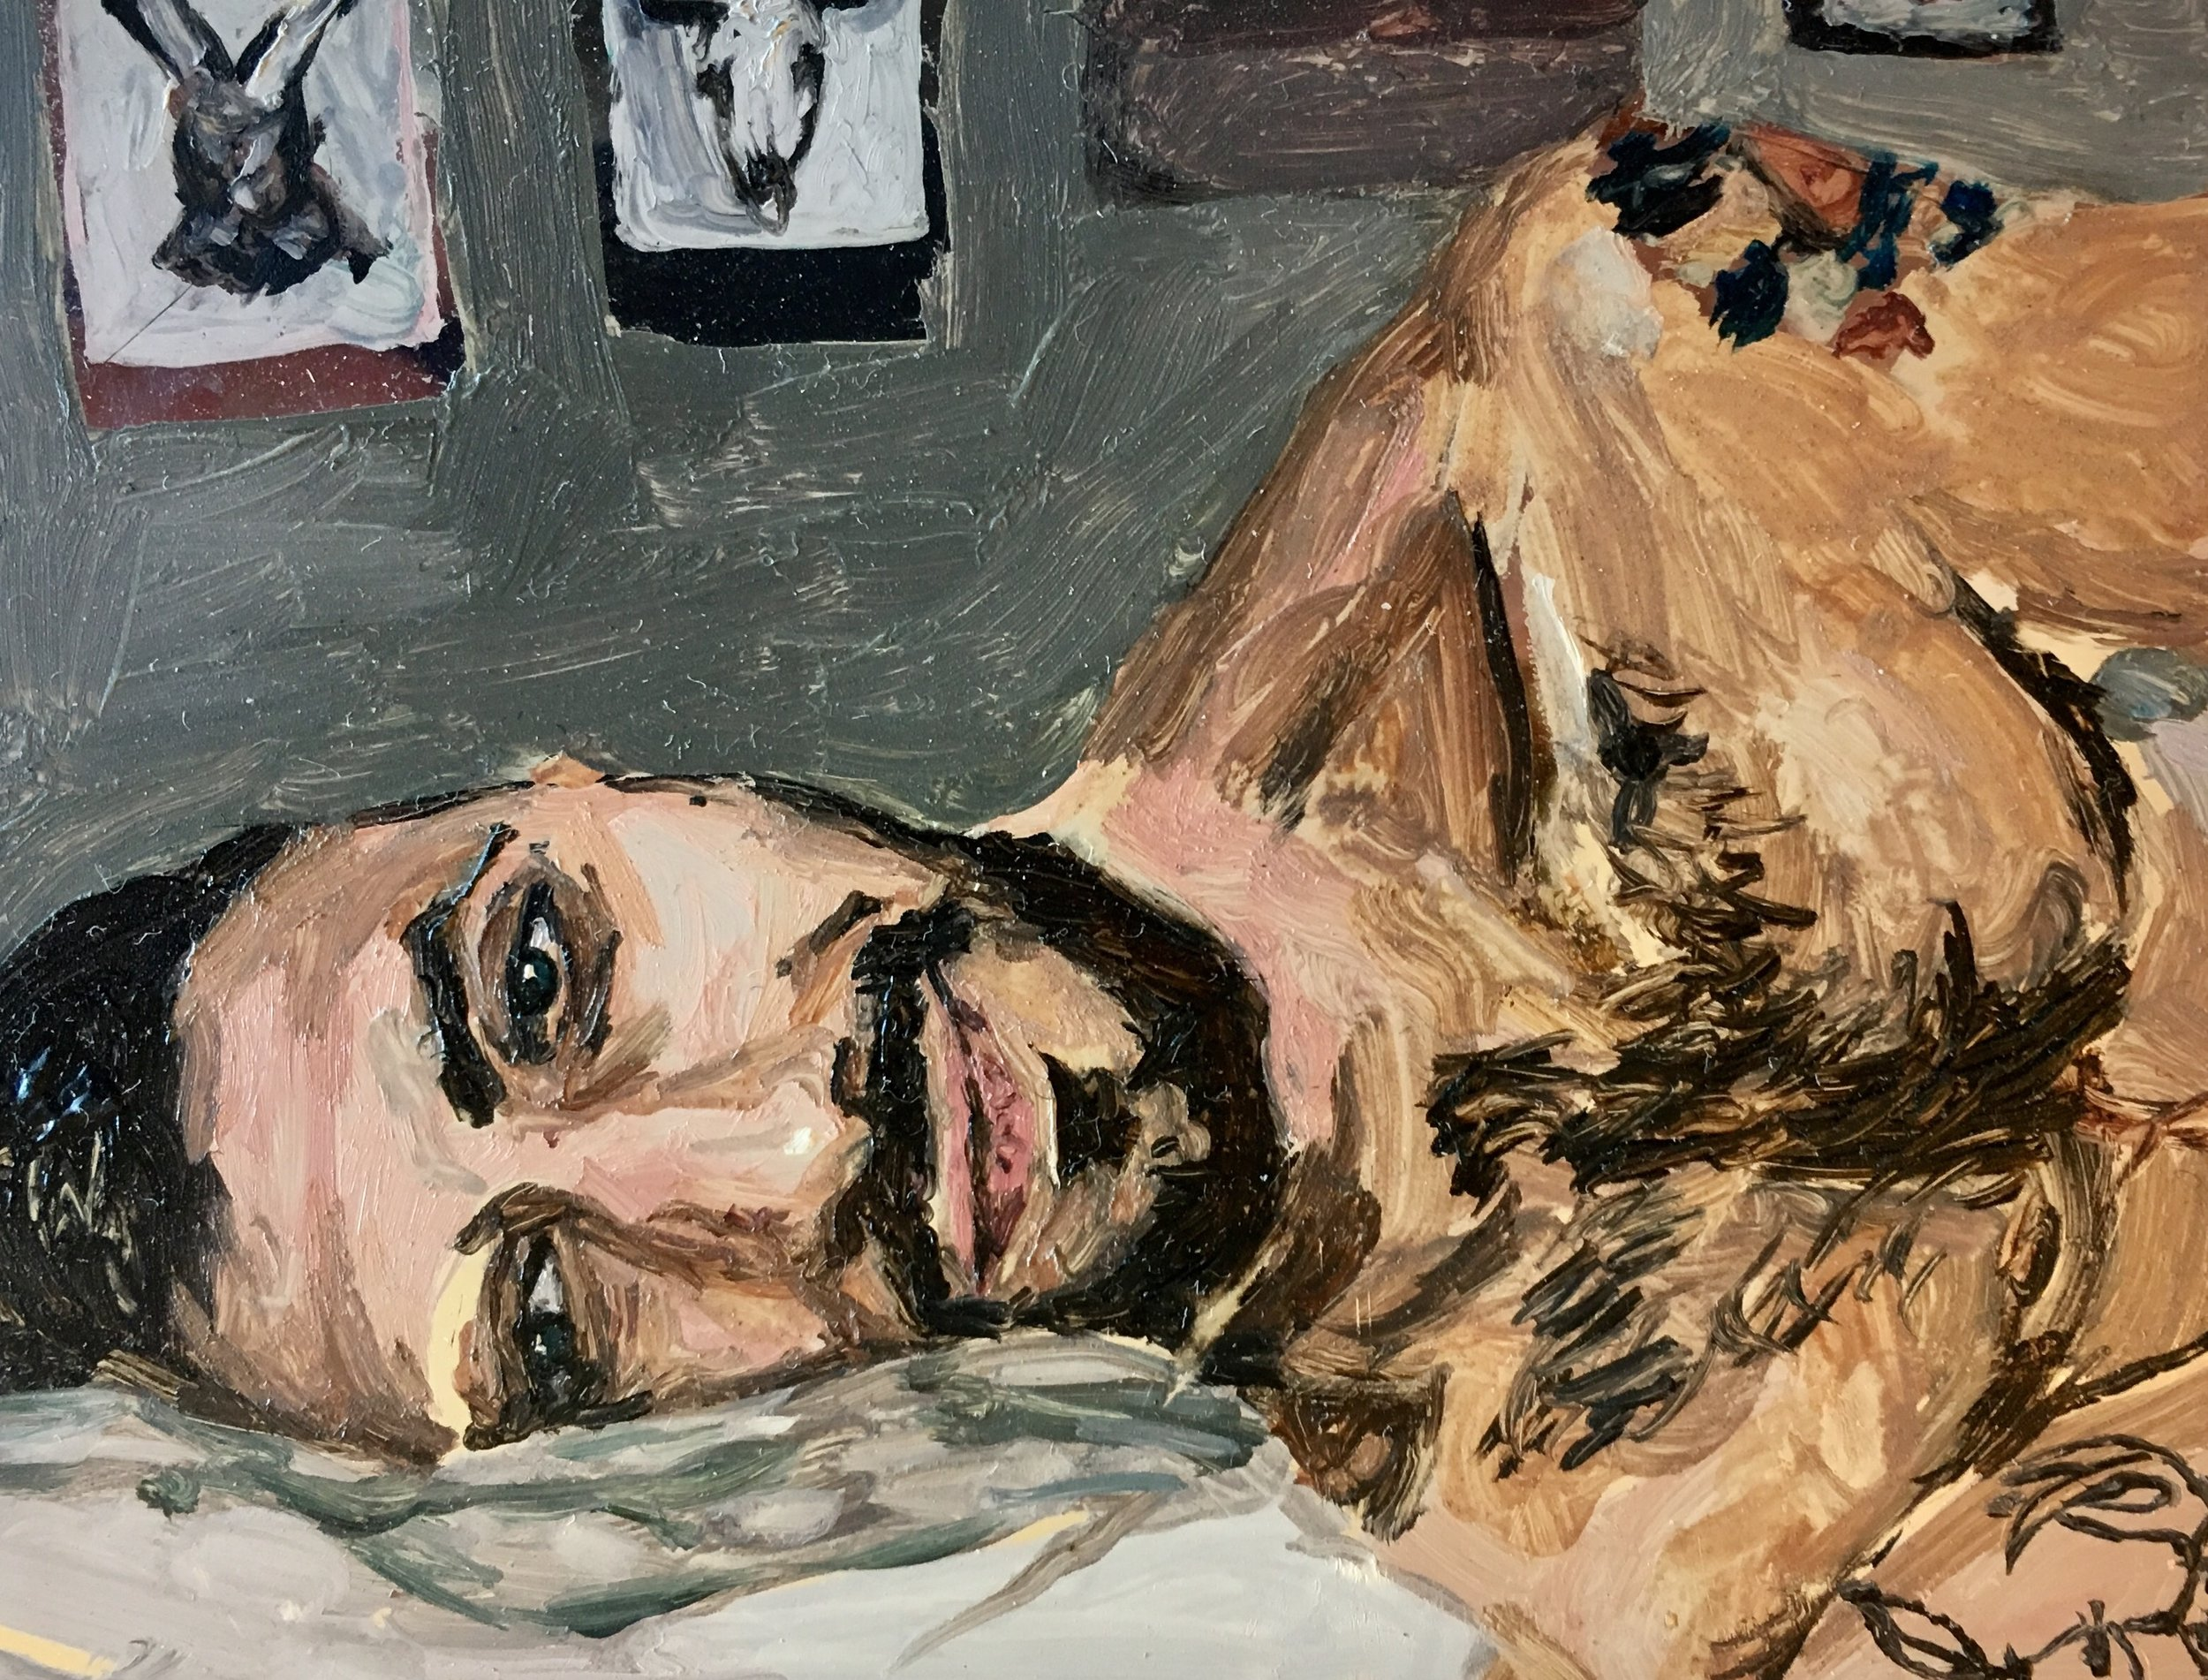 """Portrait of Les"" by Adam Chuckn, 3.25x4in, oil on mylar"